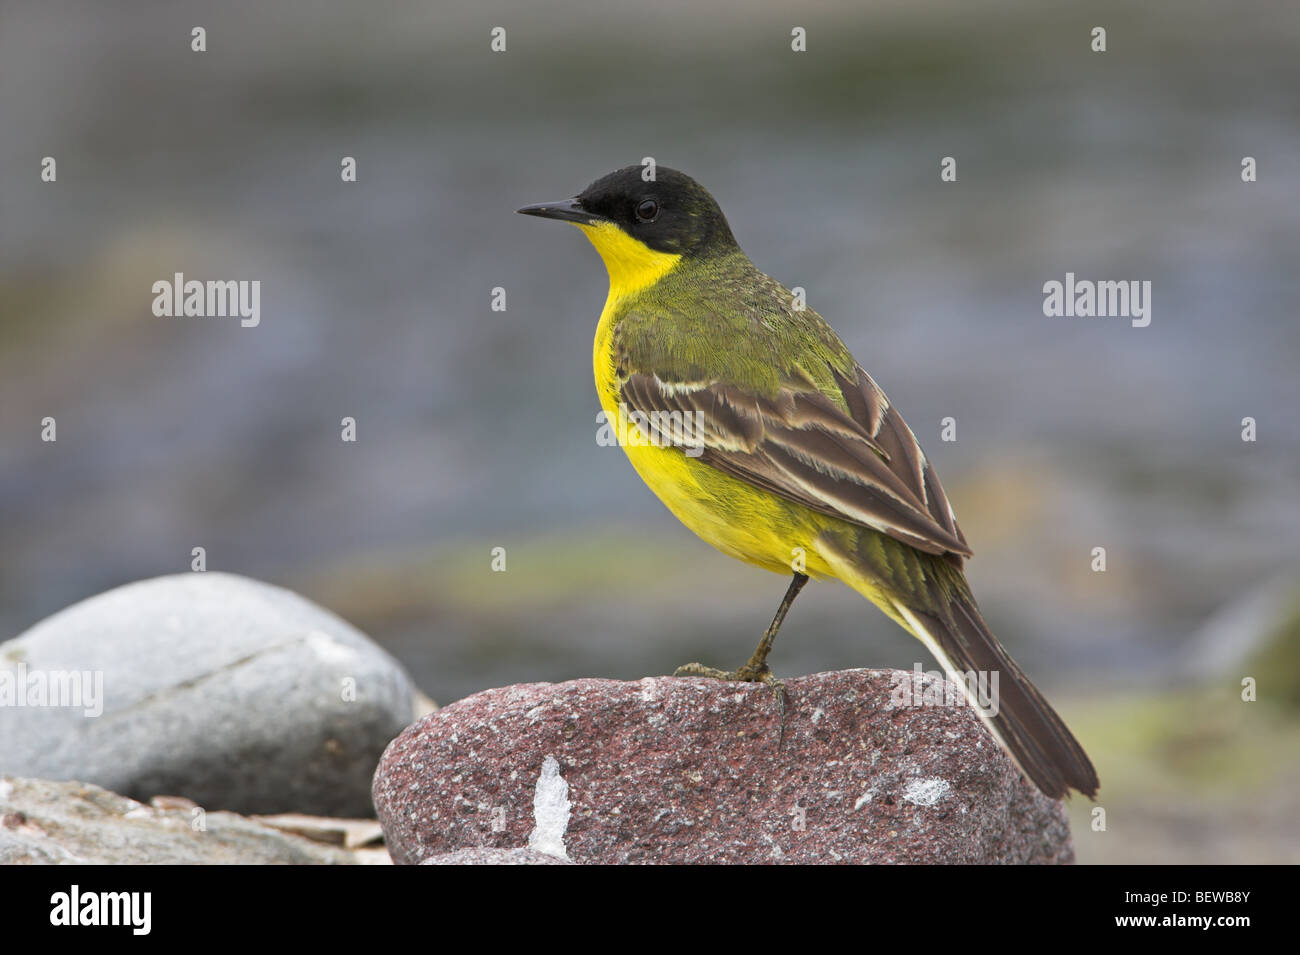 Black-headed Wagtail (Motacilla flava feldegg) sitting on stone, side view - Stock Image